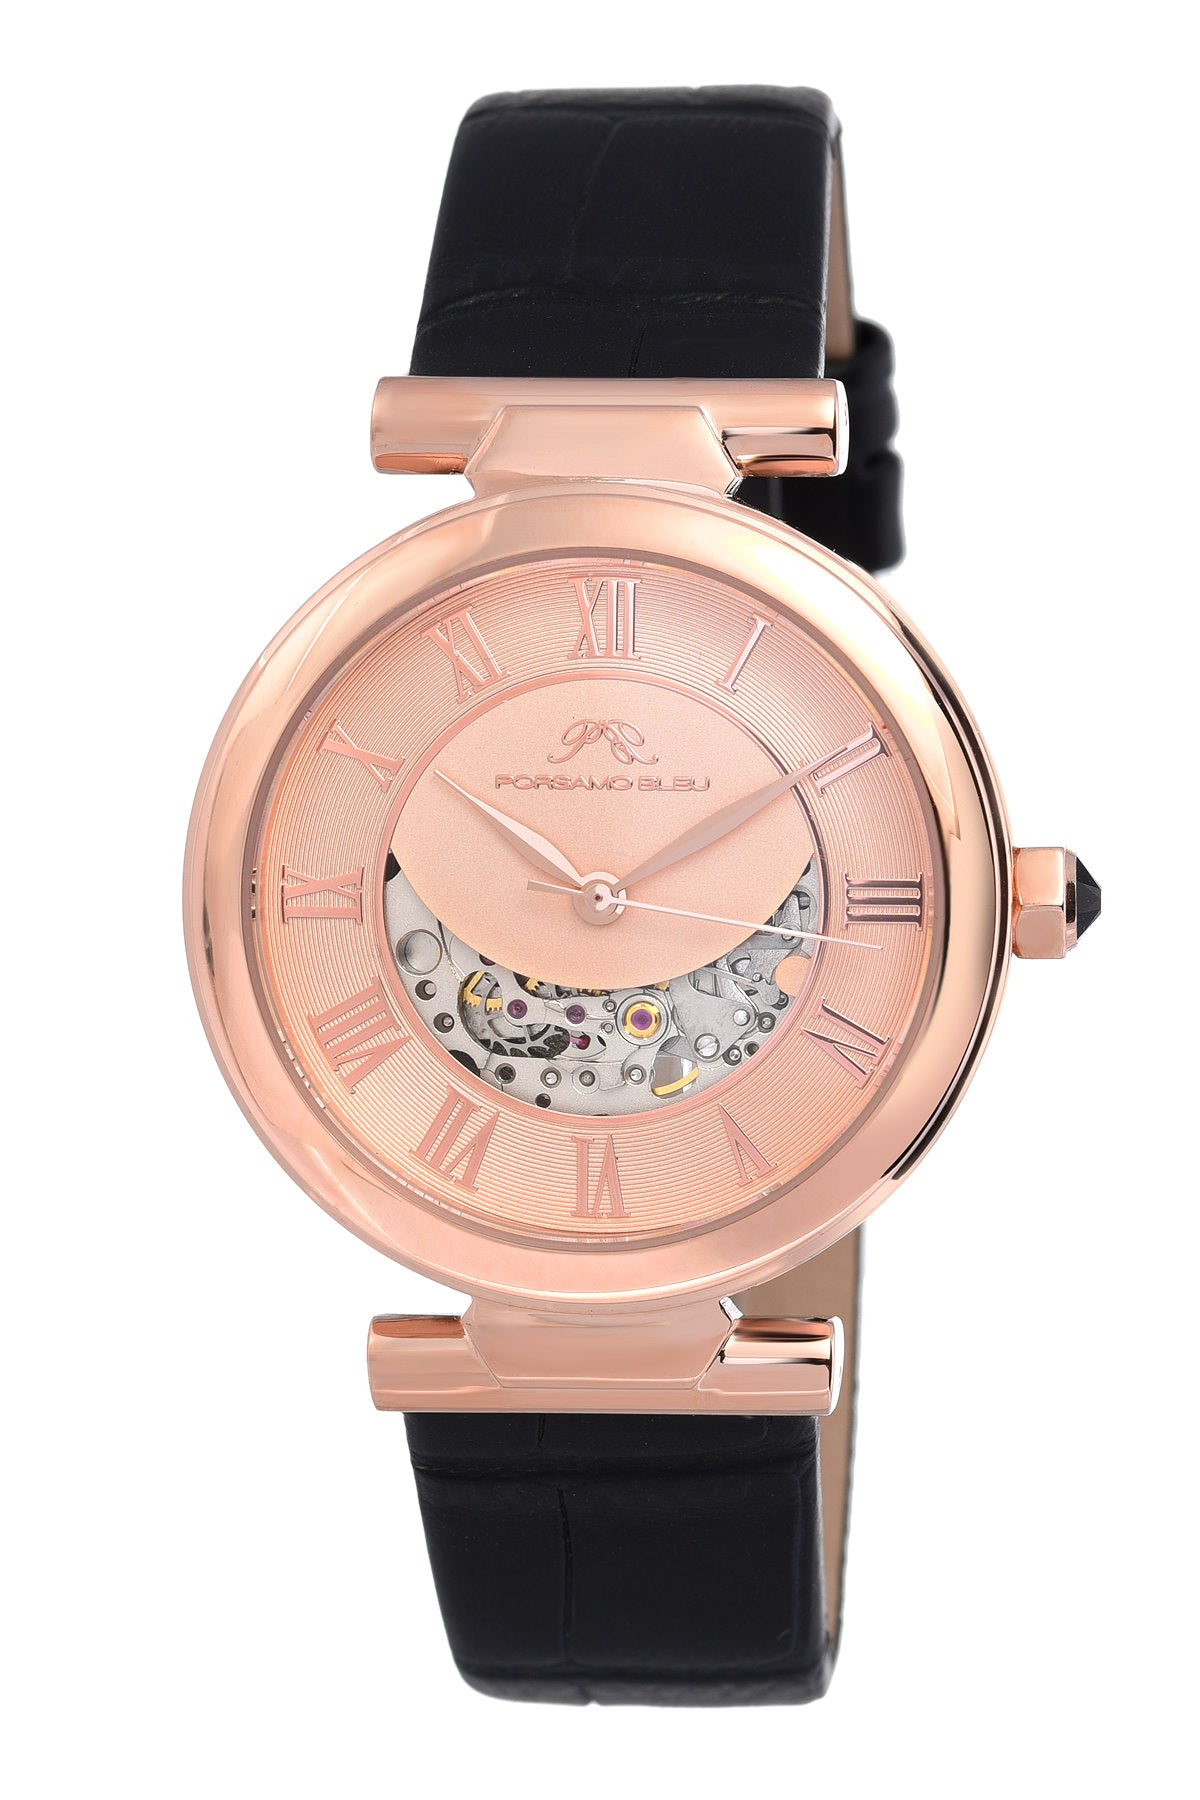 Porsamo Bleu Coco luxury automatic women's watch, genuine leather band, rose, black 811CCOL